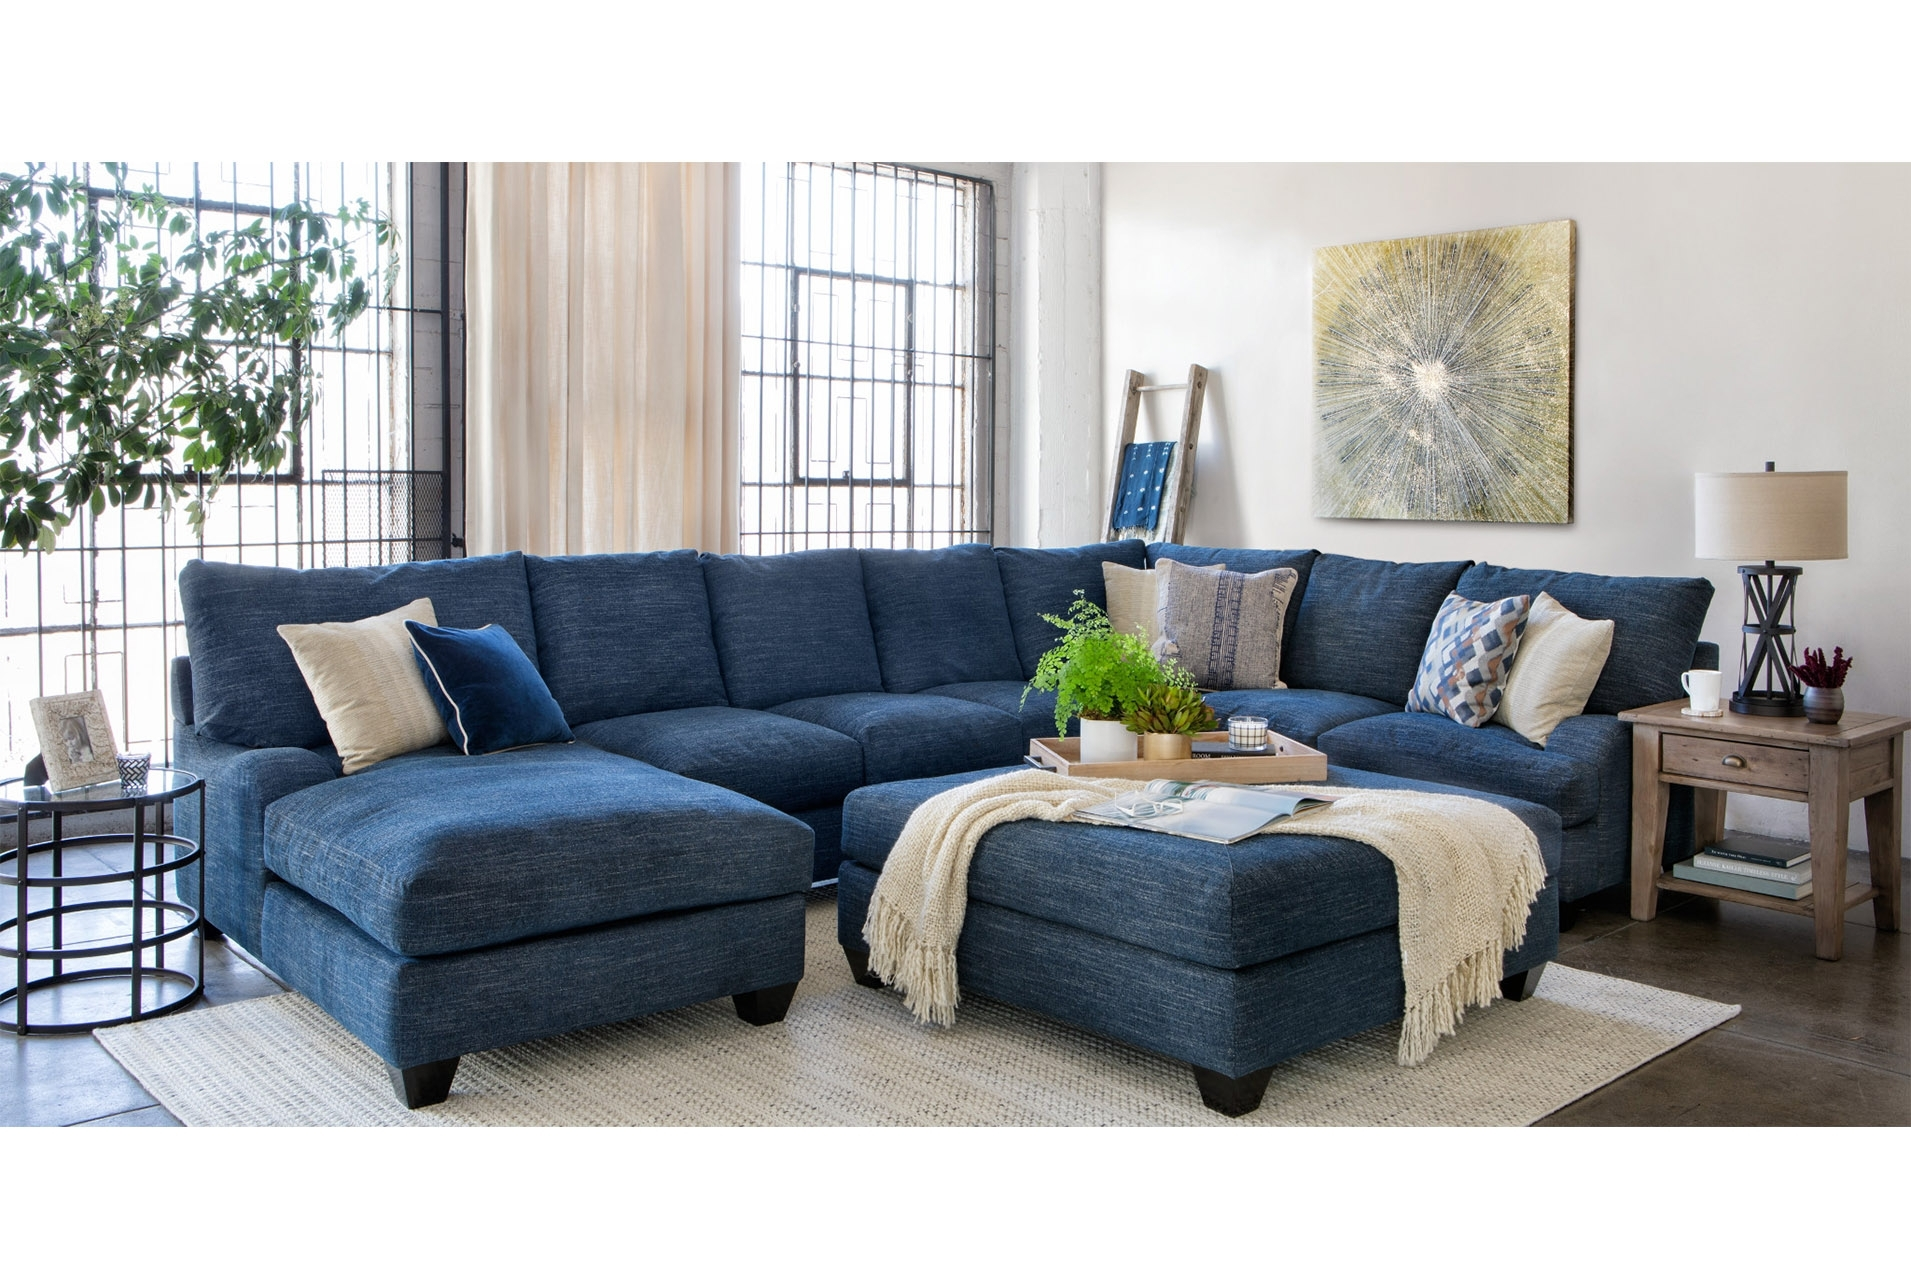 Sierra Down 3 Piece Sectional W/laf Chaise | Products | Pinterest Throughout Sierra Down 3 Piece Sectionals With Laf Chaise (View 26 of 30)